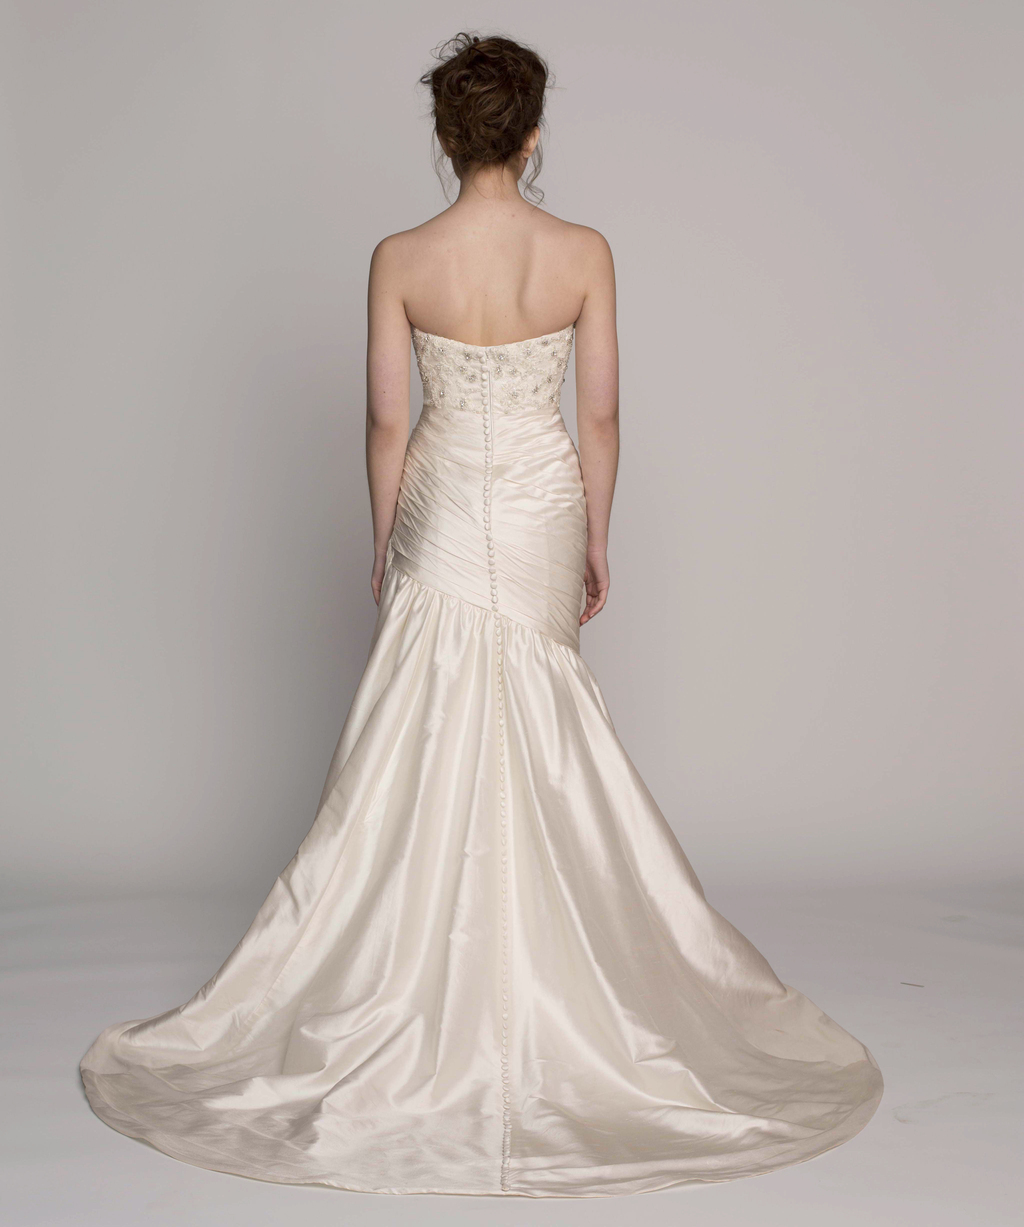 Kelly-faetanini-wedding-dress-2014-spring-bridal-gown-collection-melissa.full